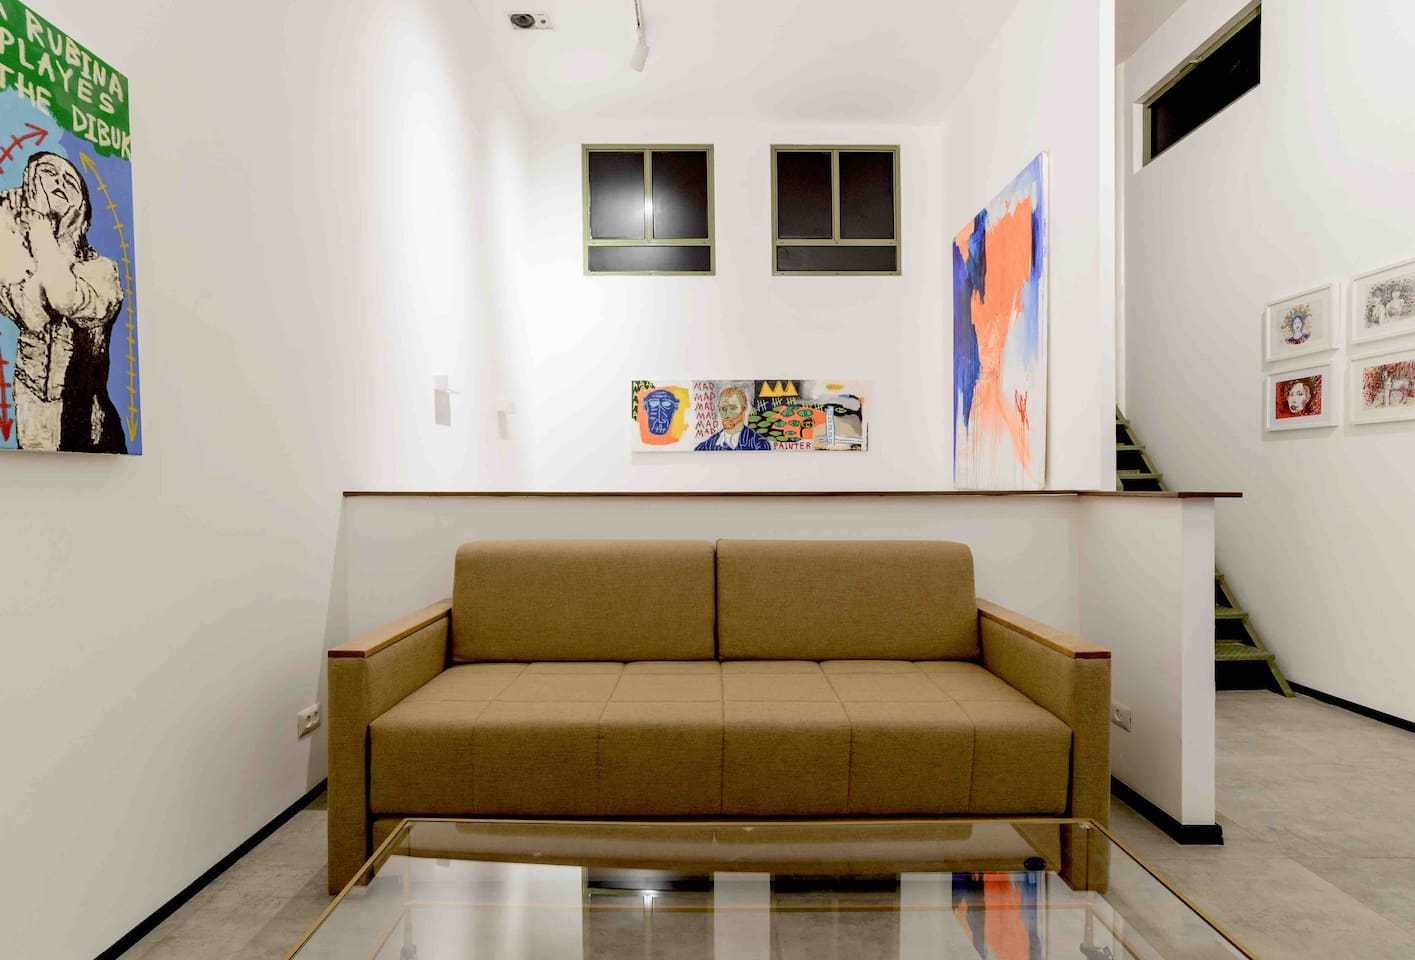 Sofa Simmons opens to two 90/190 beds, 4,5 meters high ceilings